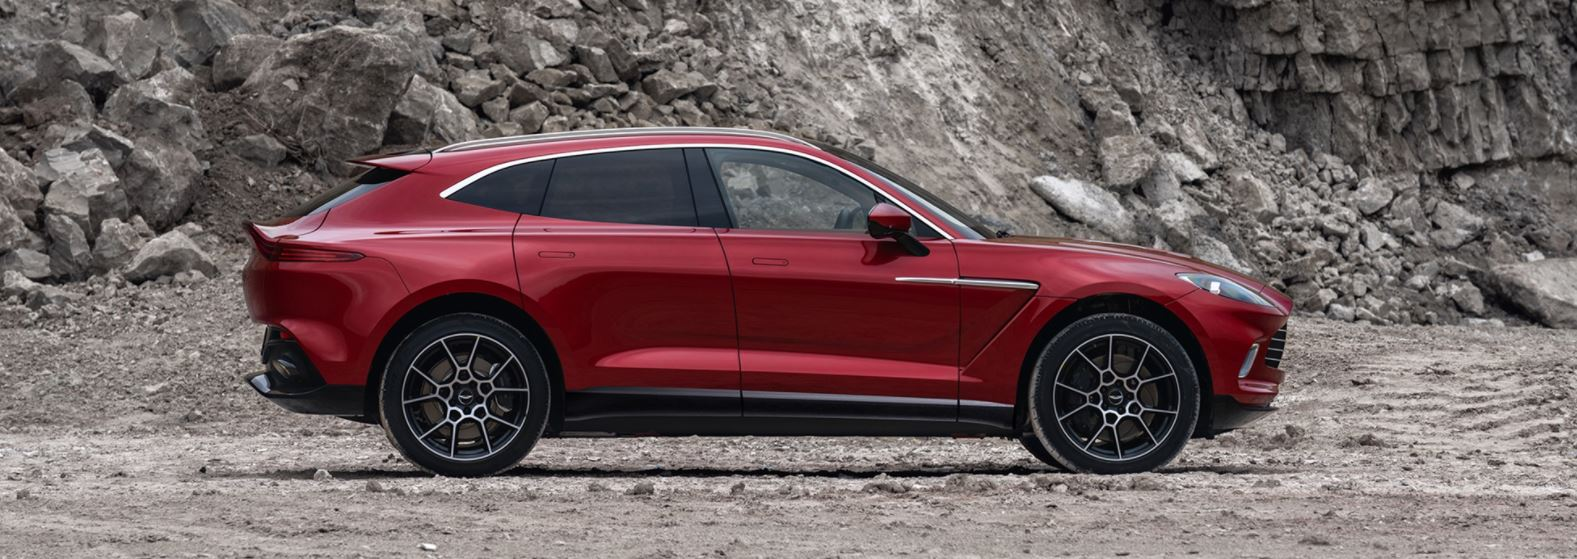 Here's What Really Matters in Aston Martin Dbx 2021